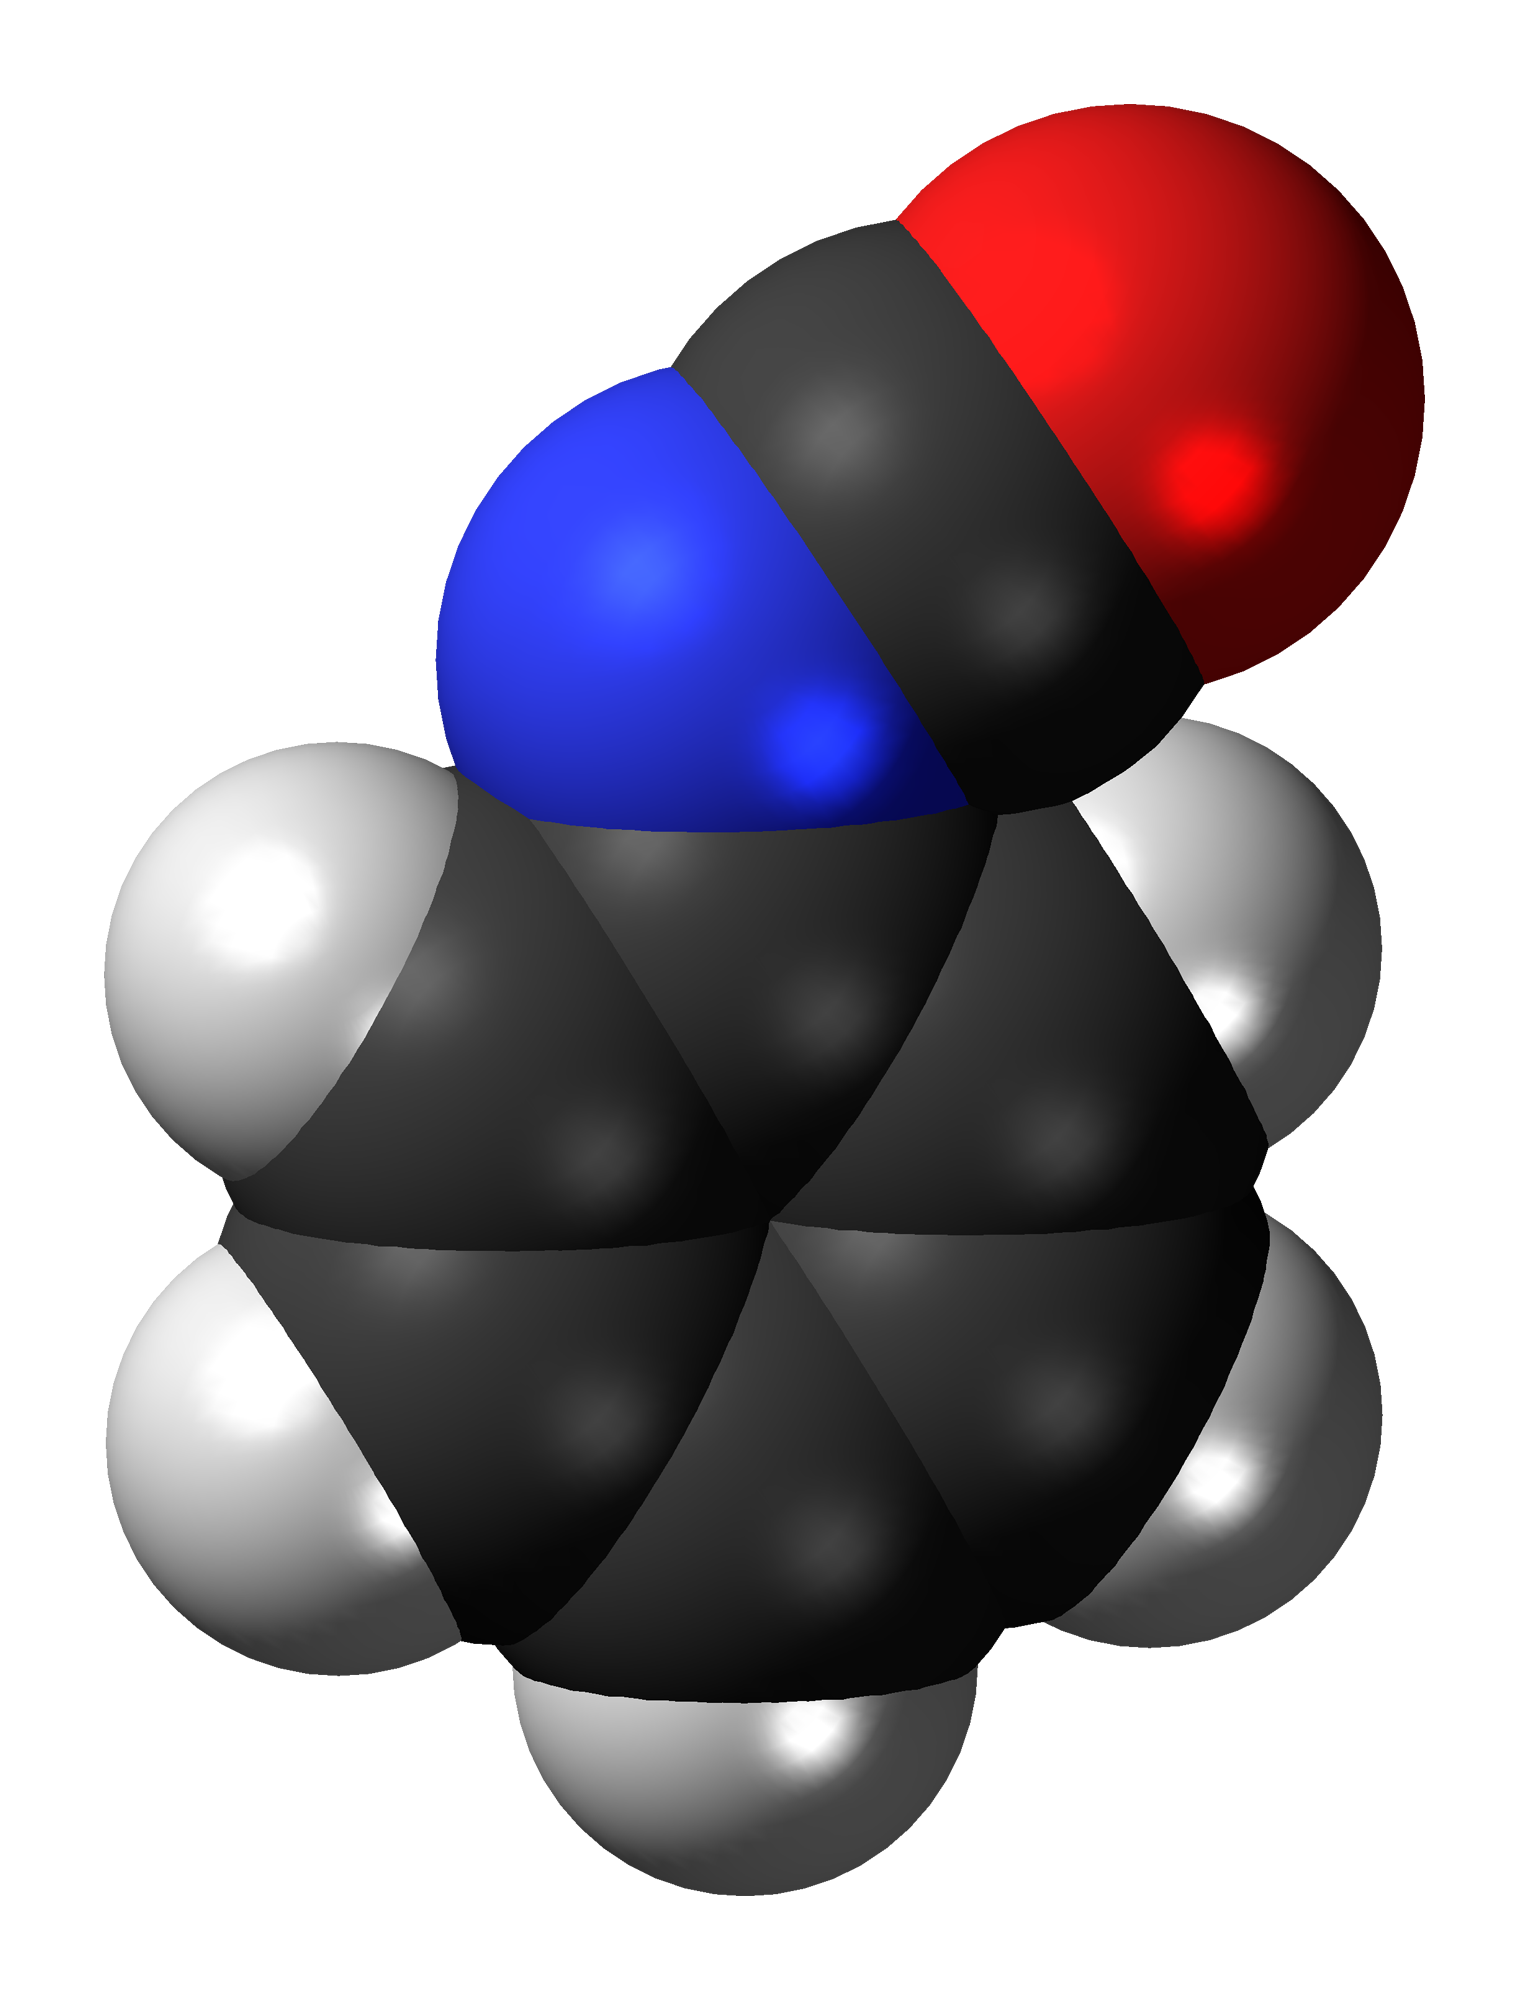 Isocyanate Group 66